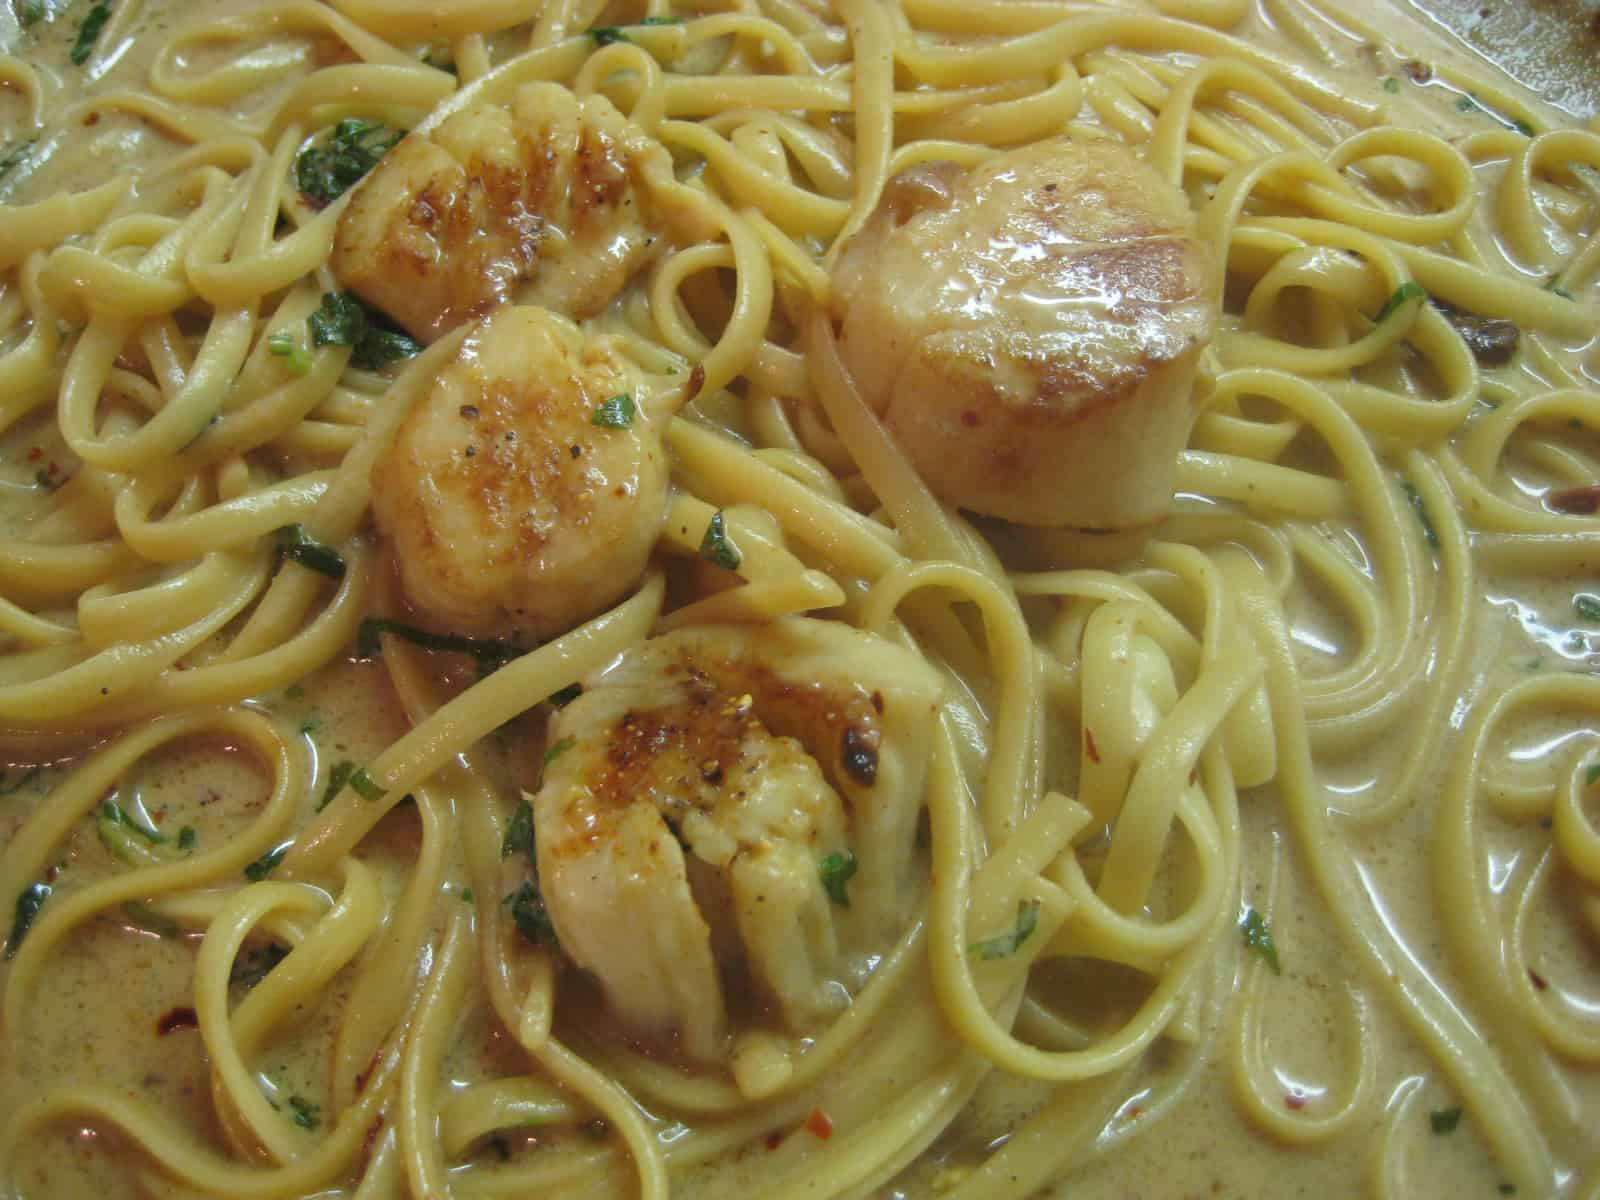 Fettucine with bay scallops